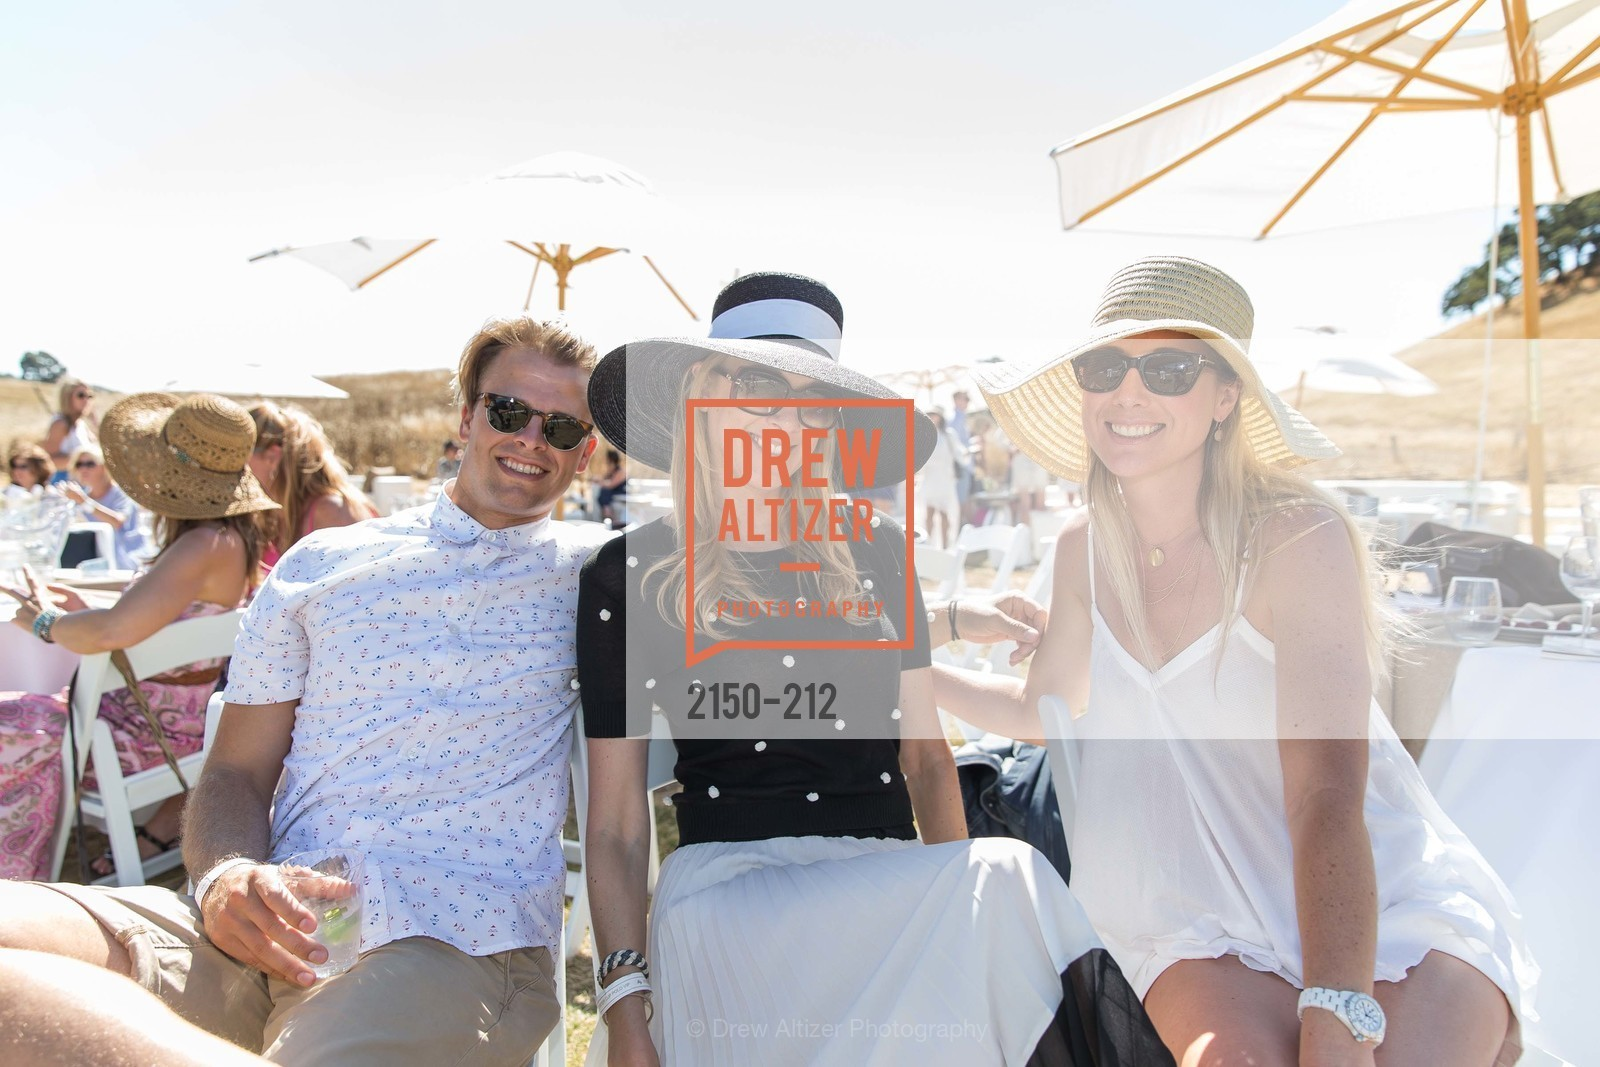 Brian Eidson, Lauren Wolfe, Samantha Hartwell, Stick & Ball Oyster Cup Polo Tournament, Cerro Pampa Polo Club, July 25th, 2015,Drew Altizer, Drew Altizer Photography, full-service event agency, private events, San Francisco photographer, photographer California